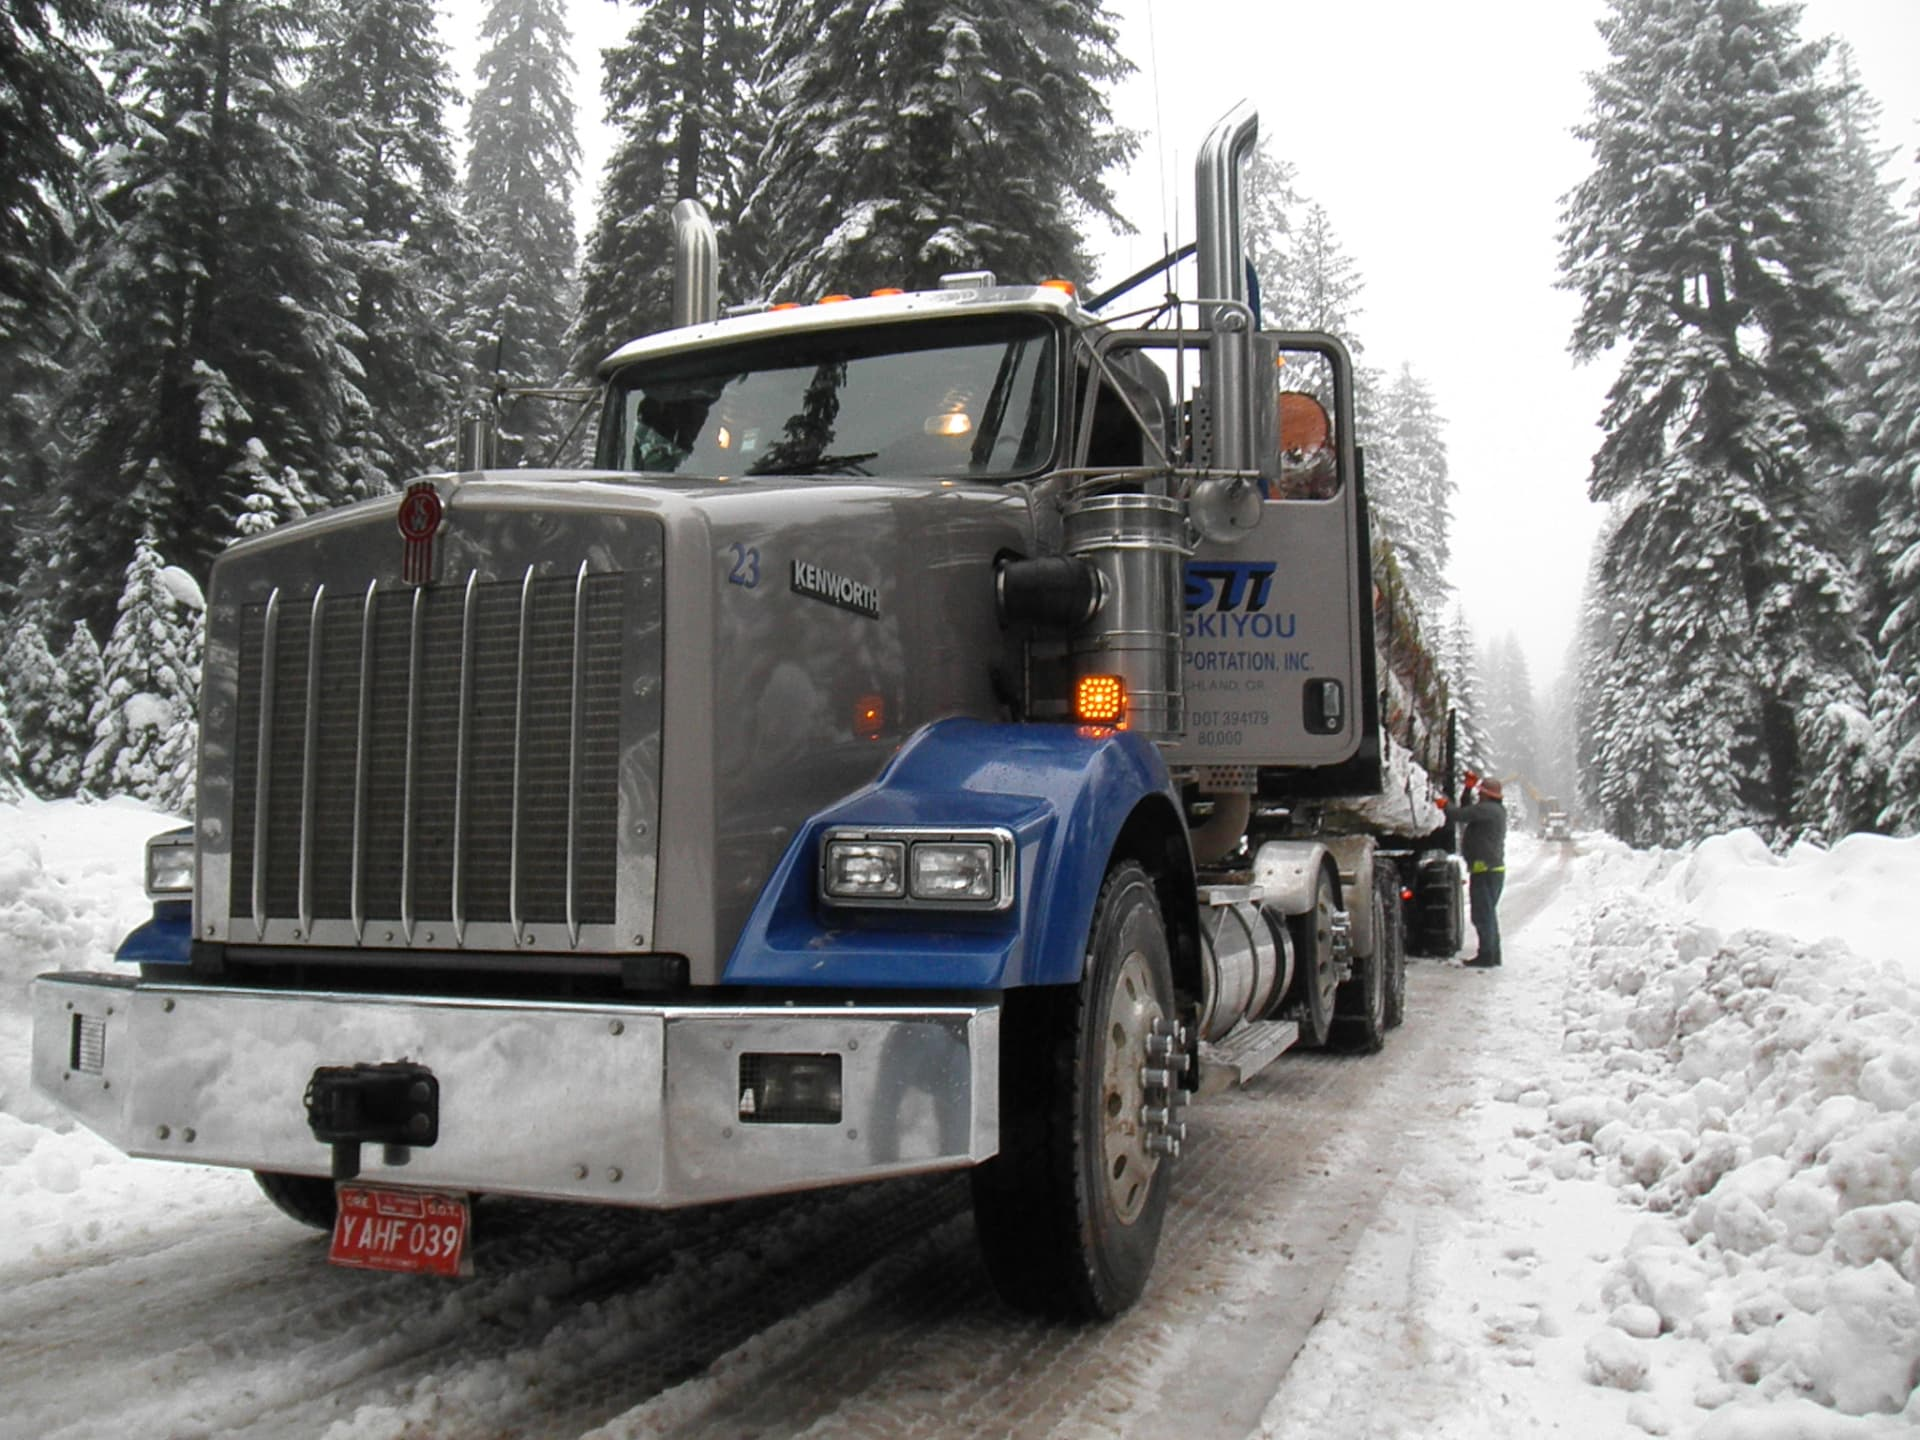 SiskiyouTransportationWinterTruck.JPG-w1920.jpg